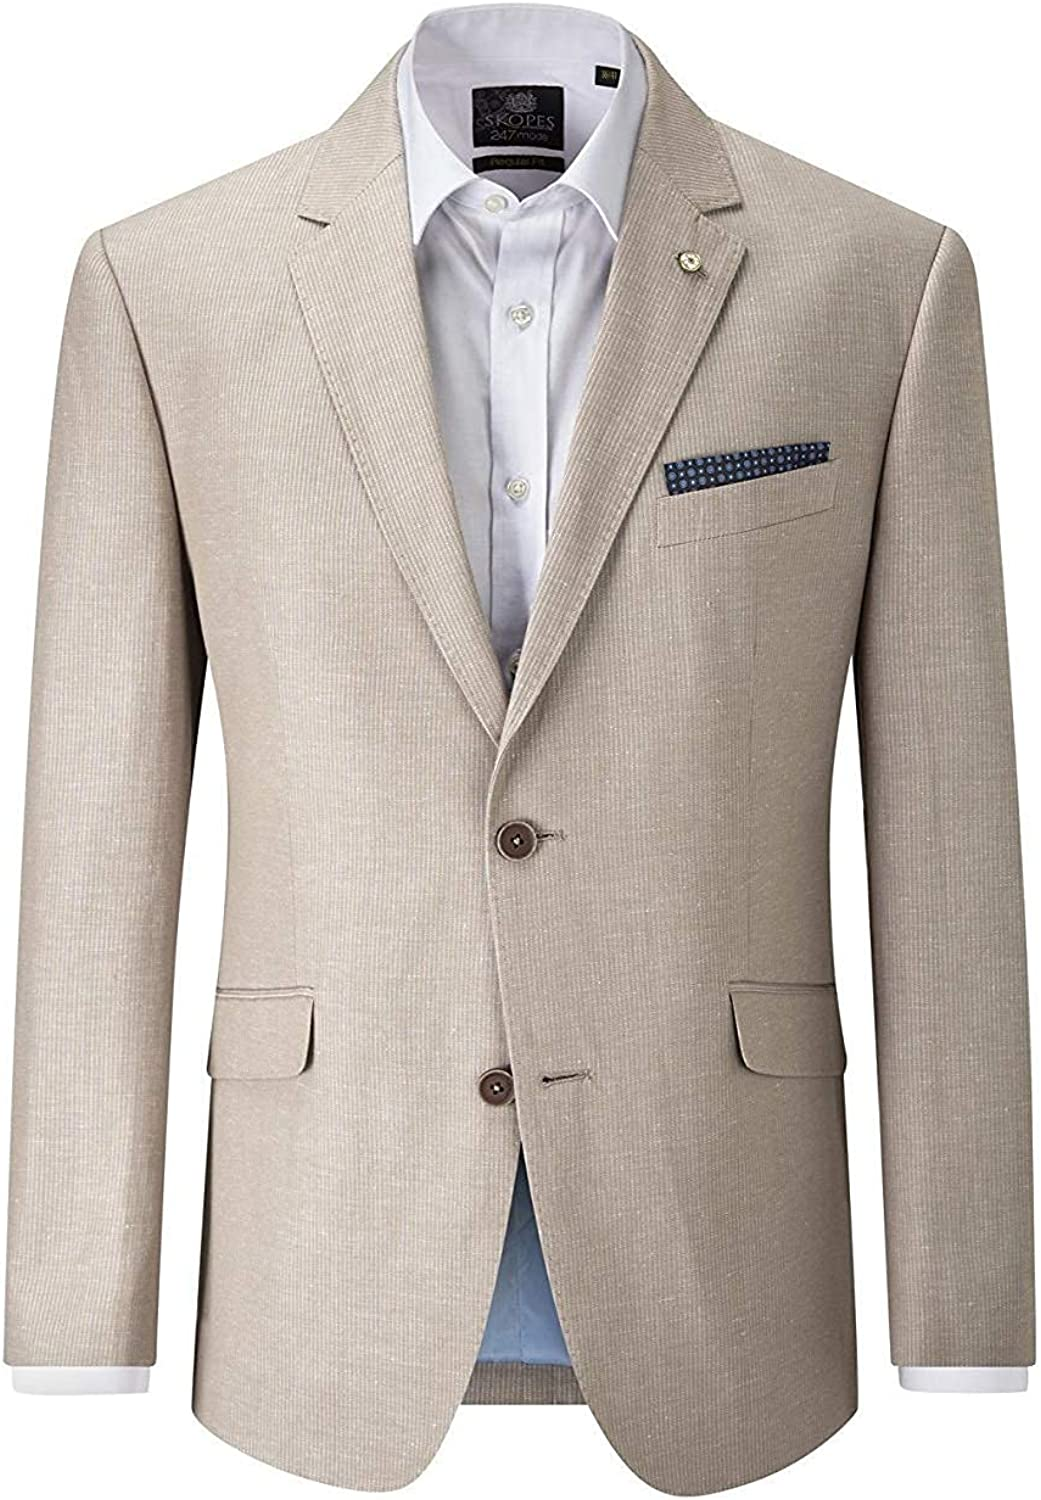 Skopes Linen Blend Striped Sports Jacket (Leon) in Stone in Chest 44 to 62 Inches, S/R/L